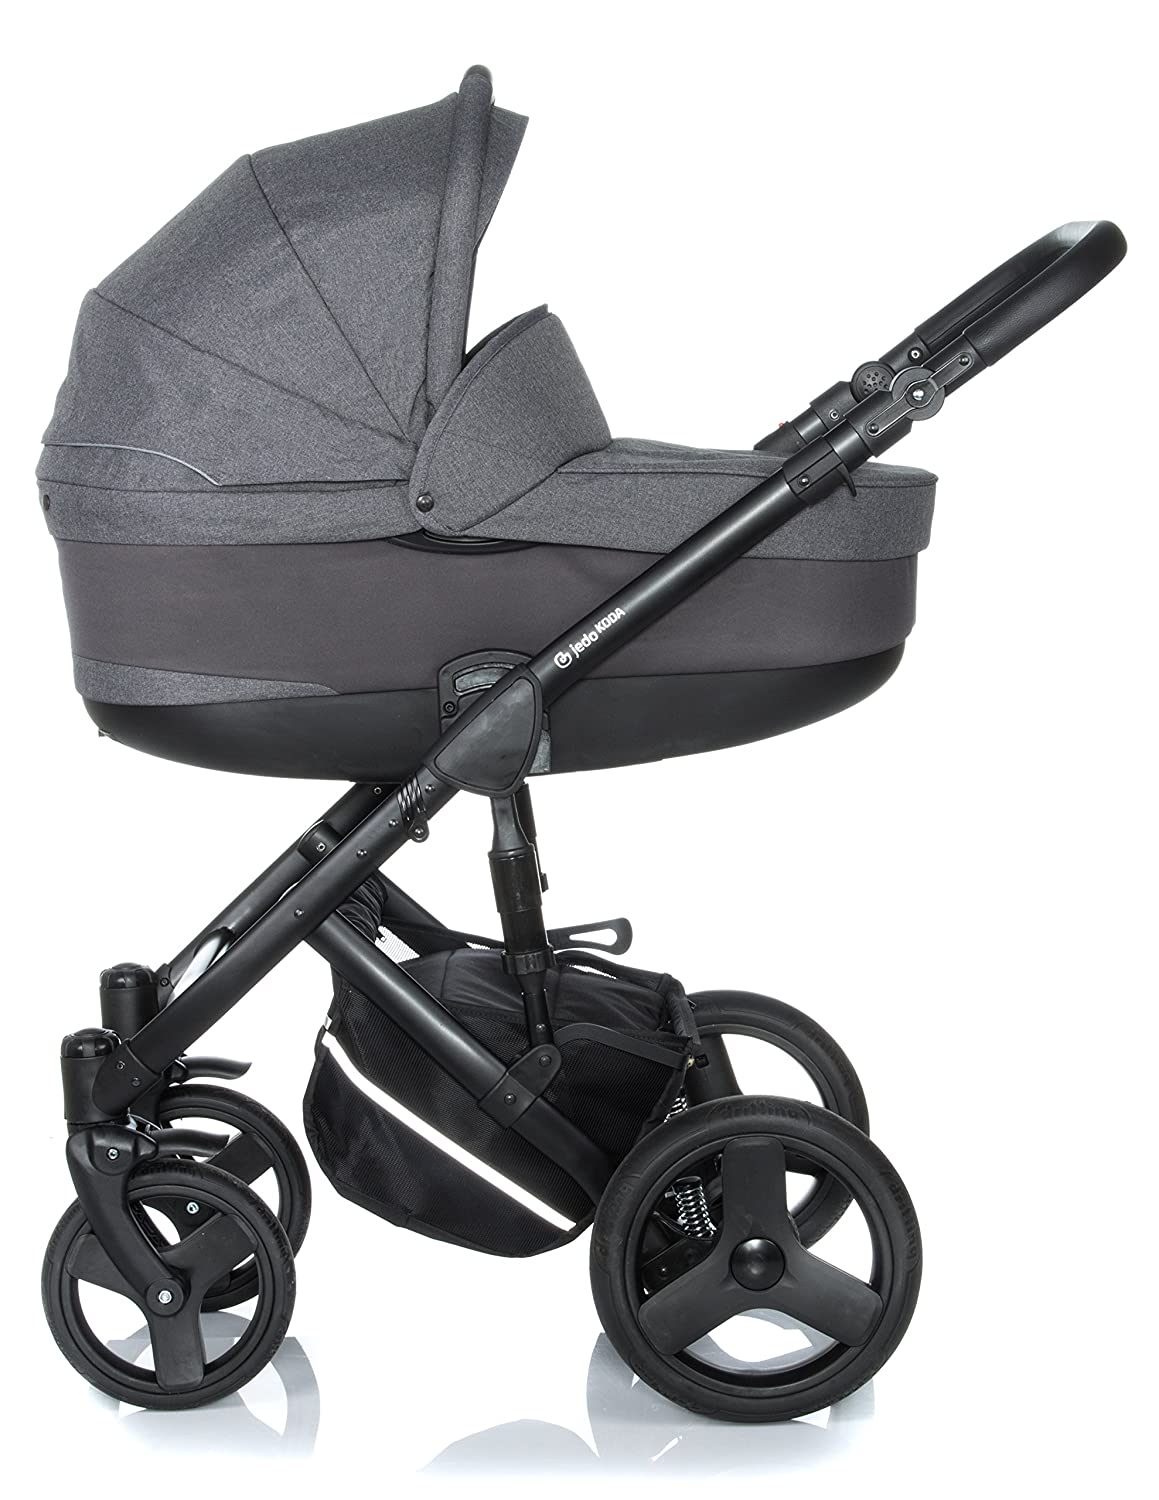 Baby stroller Jedo: photo and review of models, reviews 10